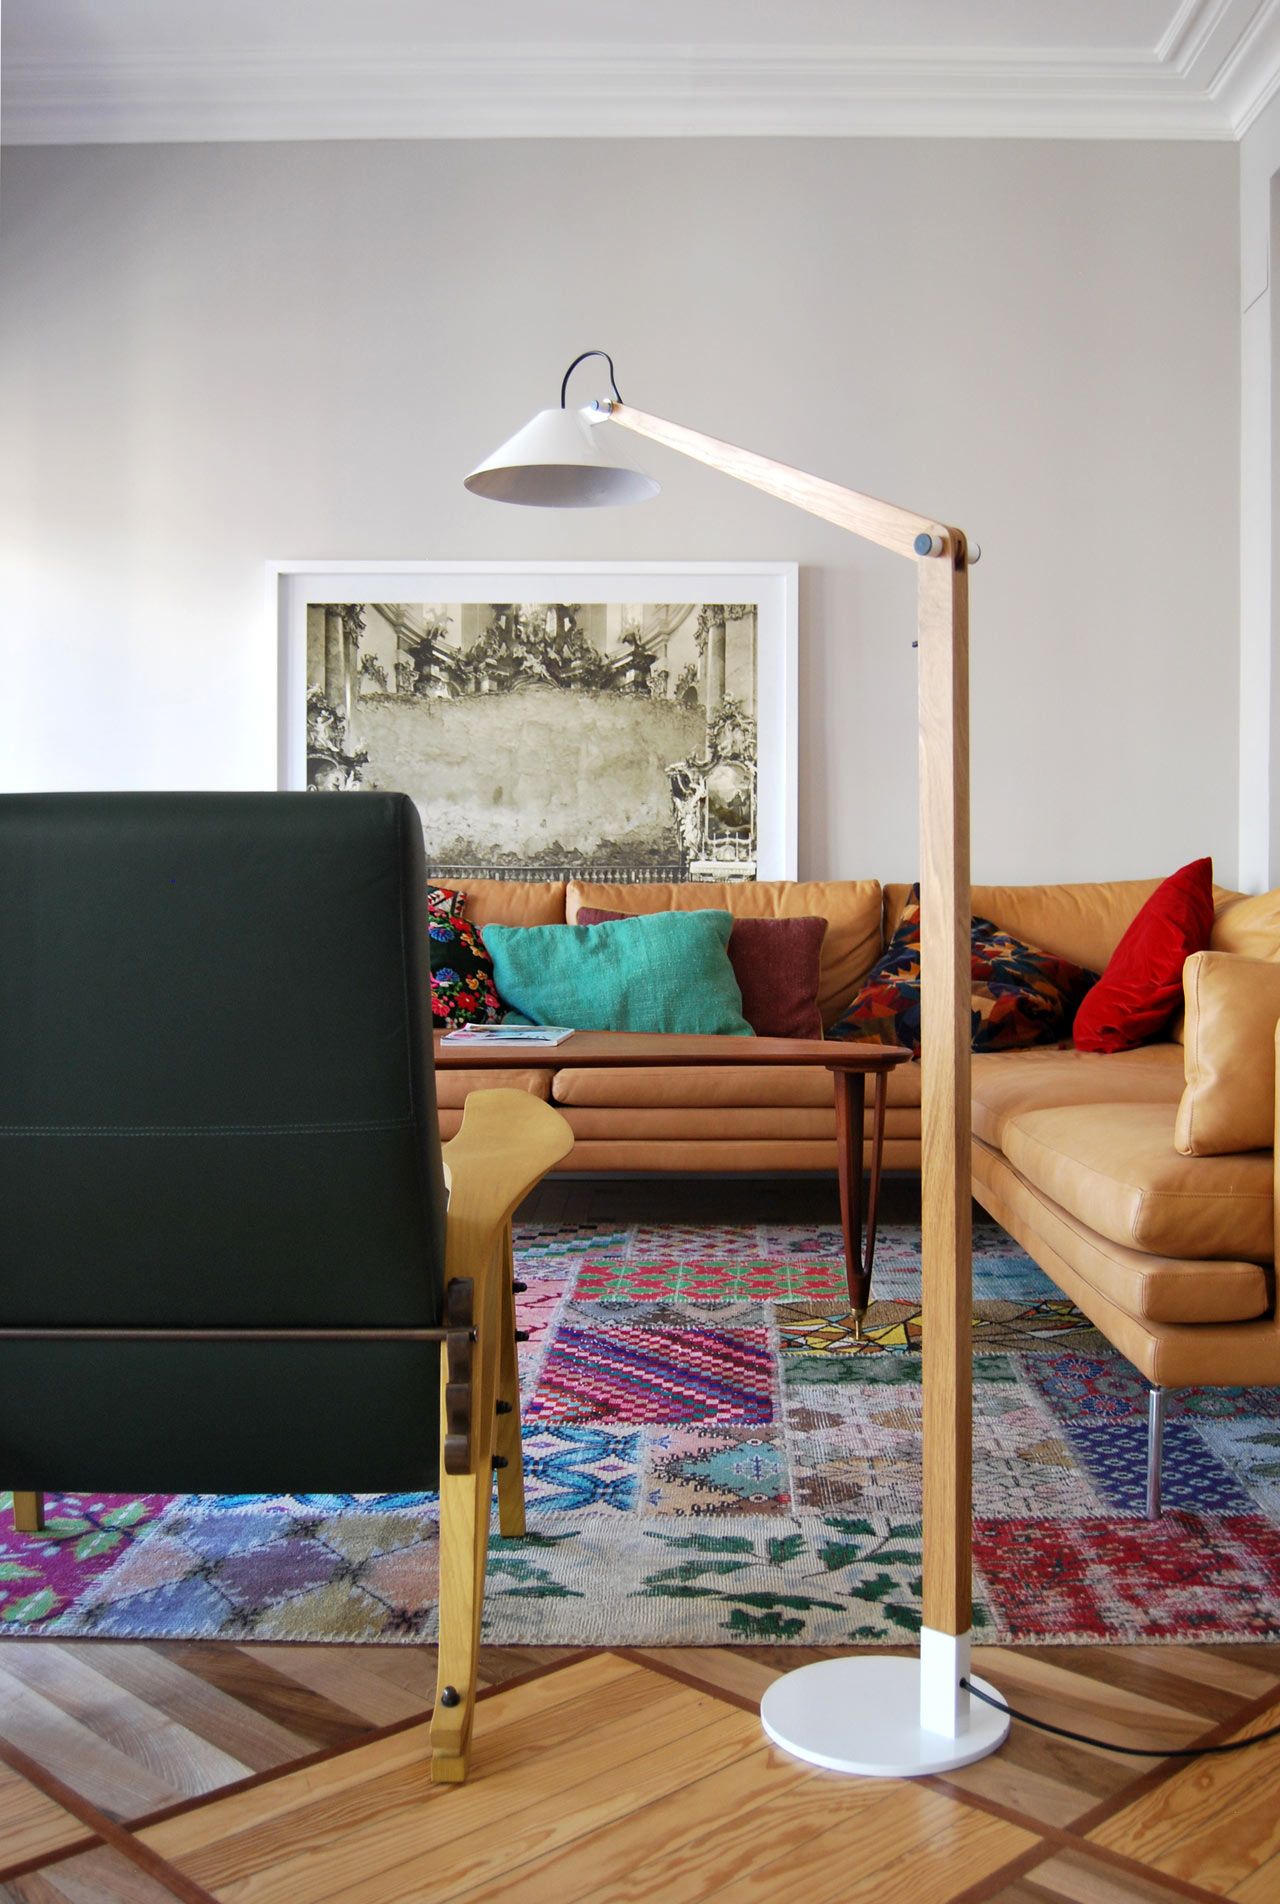 MAMET Floor Lamp by Pablo Carballal